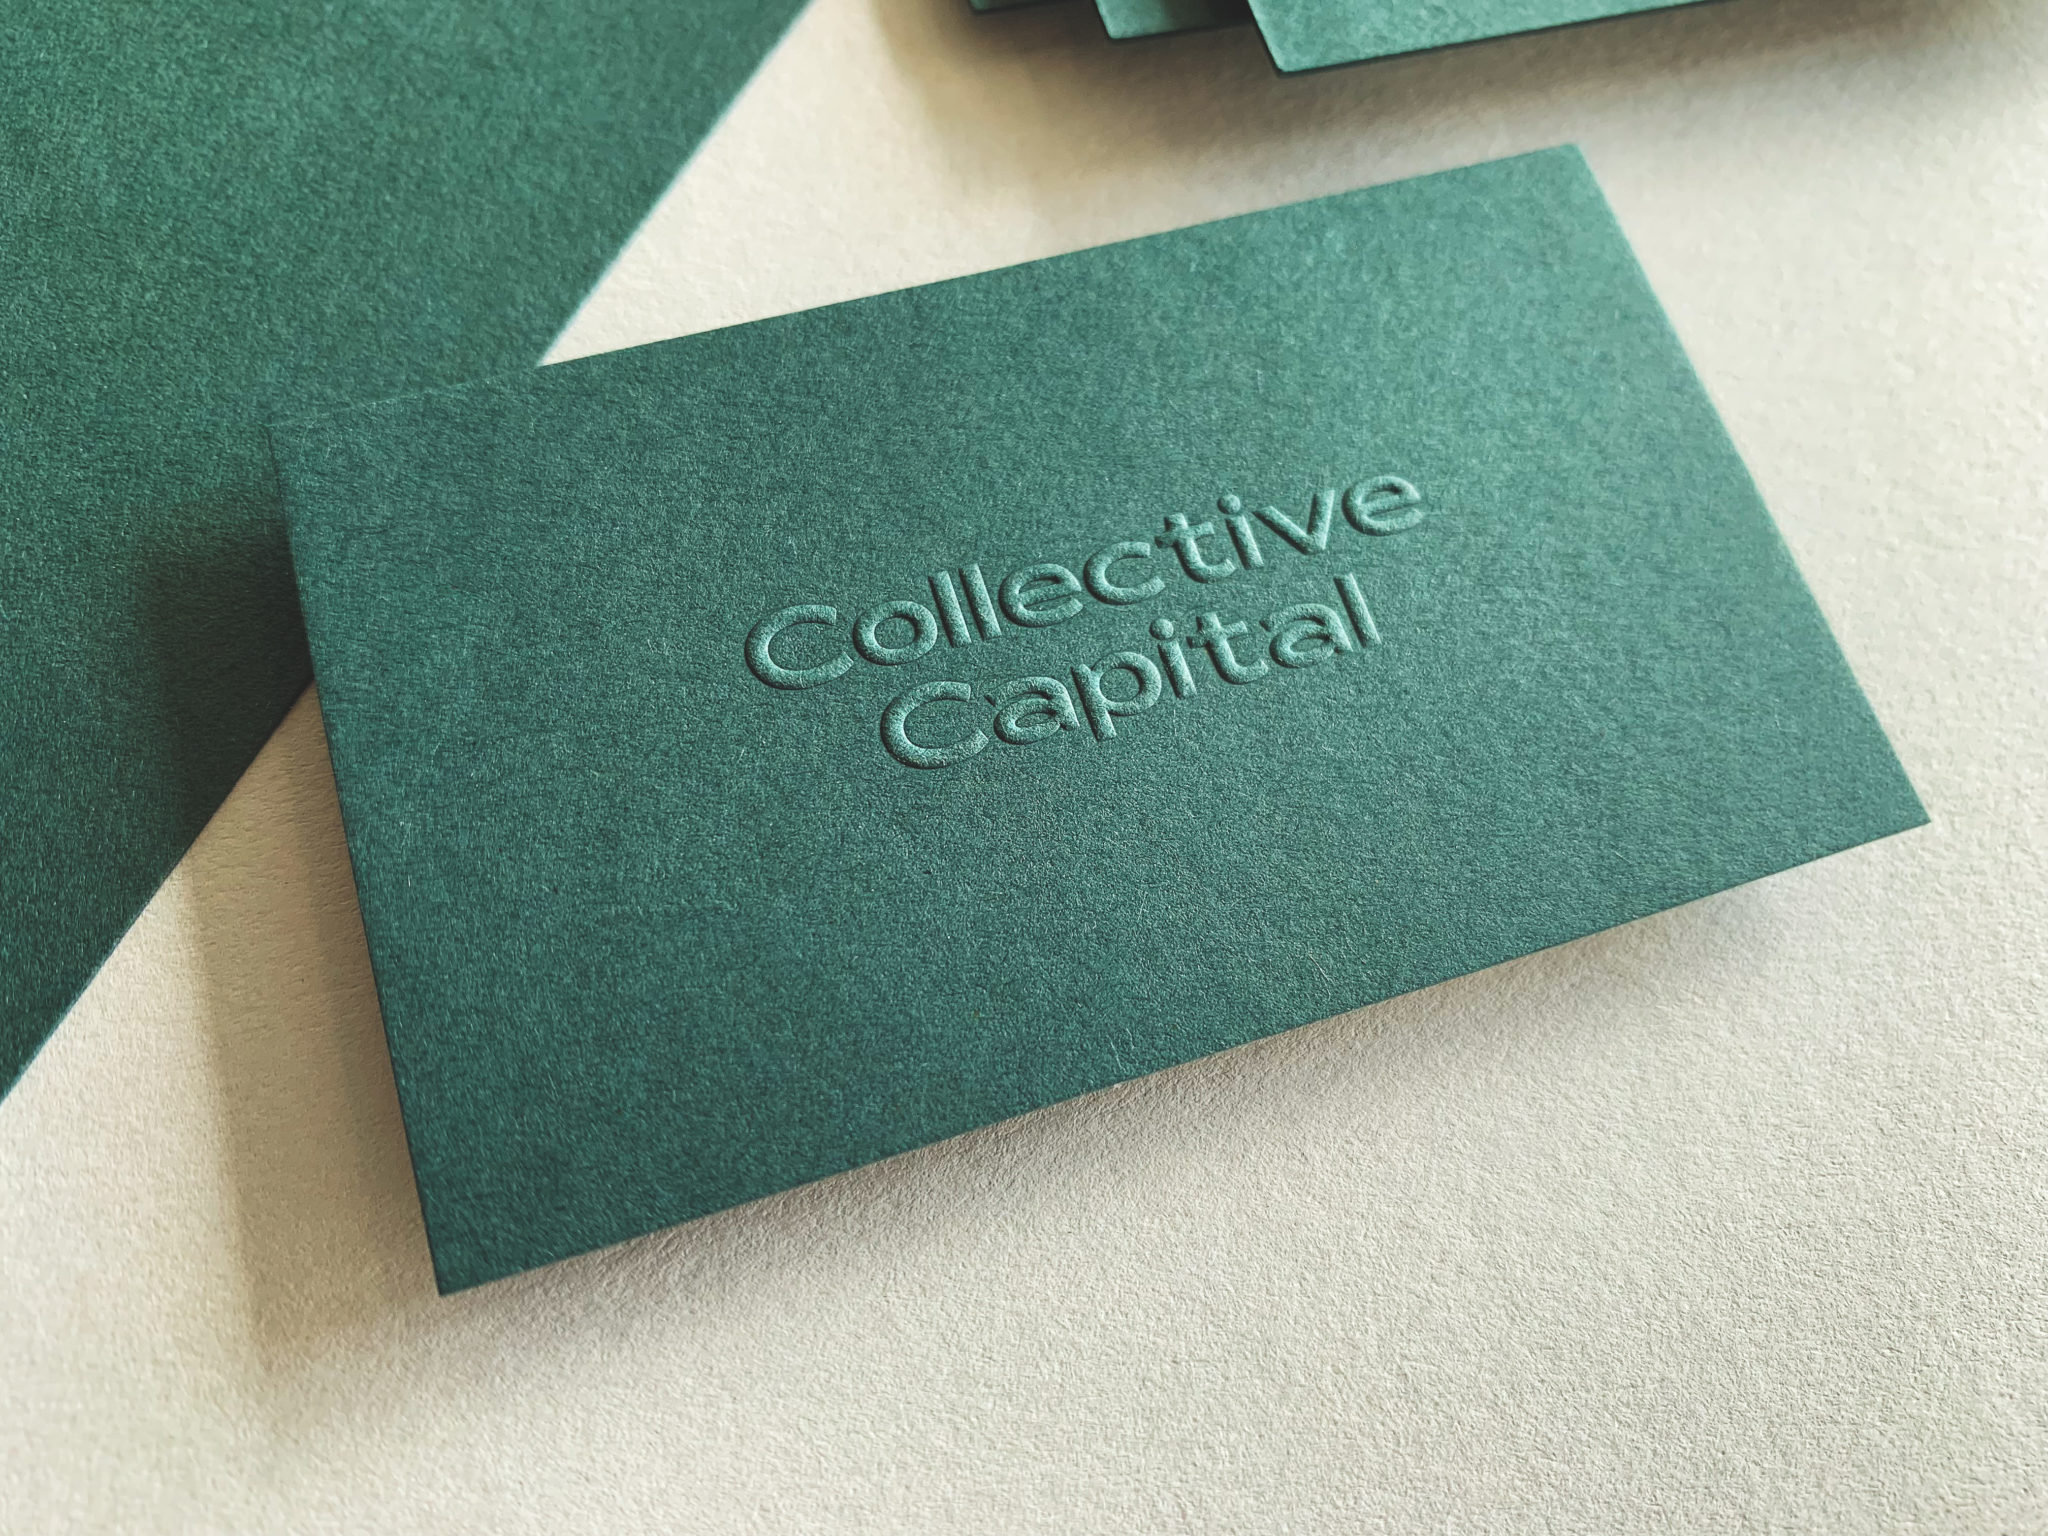 Embossed Opaque White Digital Business Cards for Collective Capital on Colorplan 2